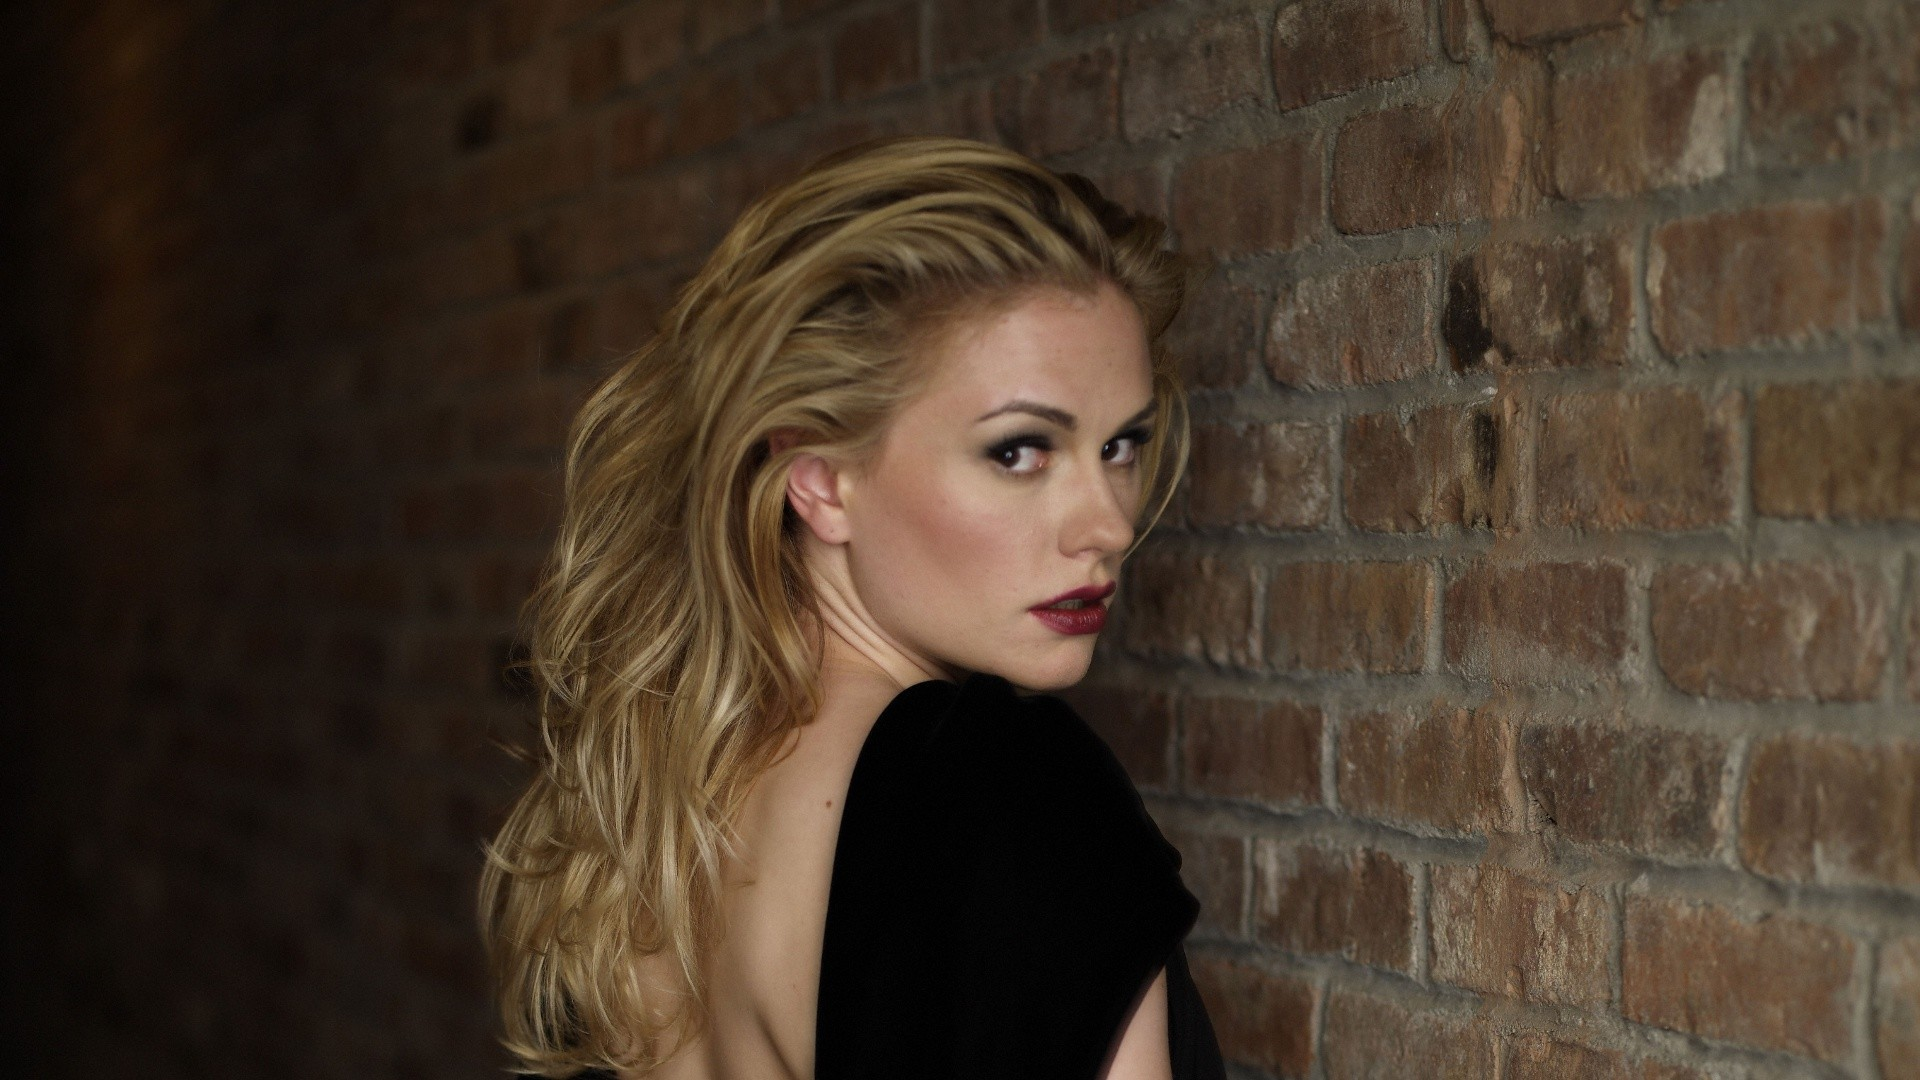 Anna Paquin Wallpaper For Laptop